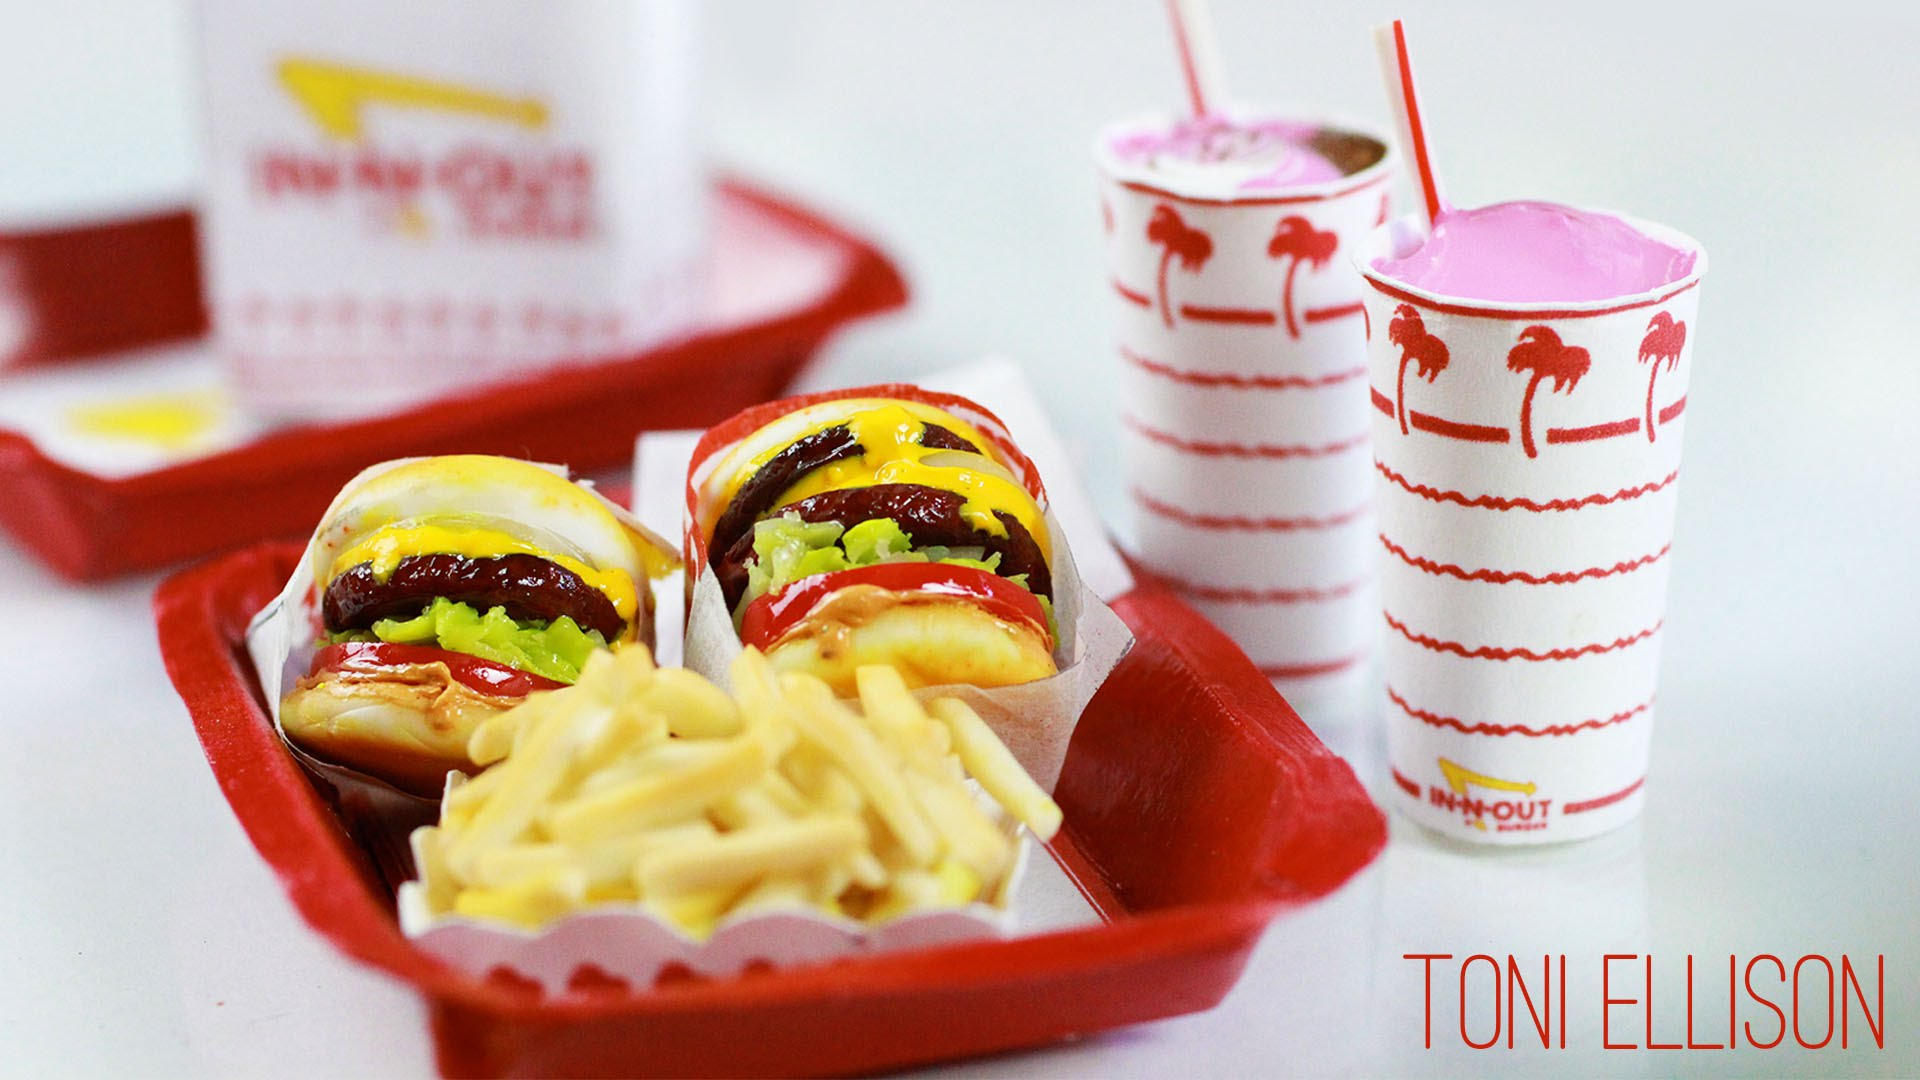 In N Out Burger Wallpaper 19   1920 X 1080 stmednet 1920x1080